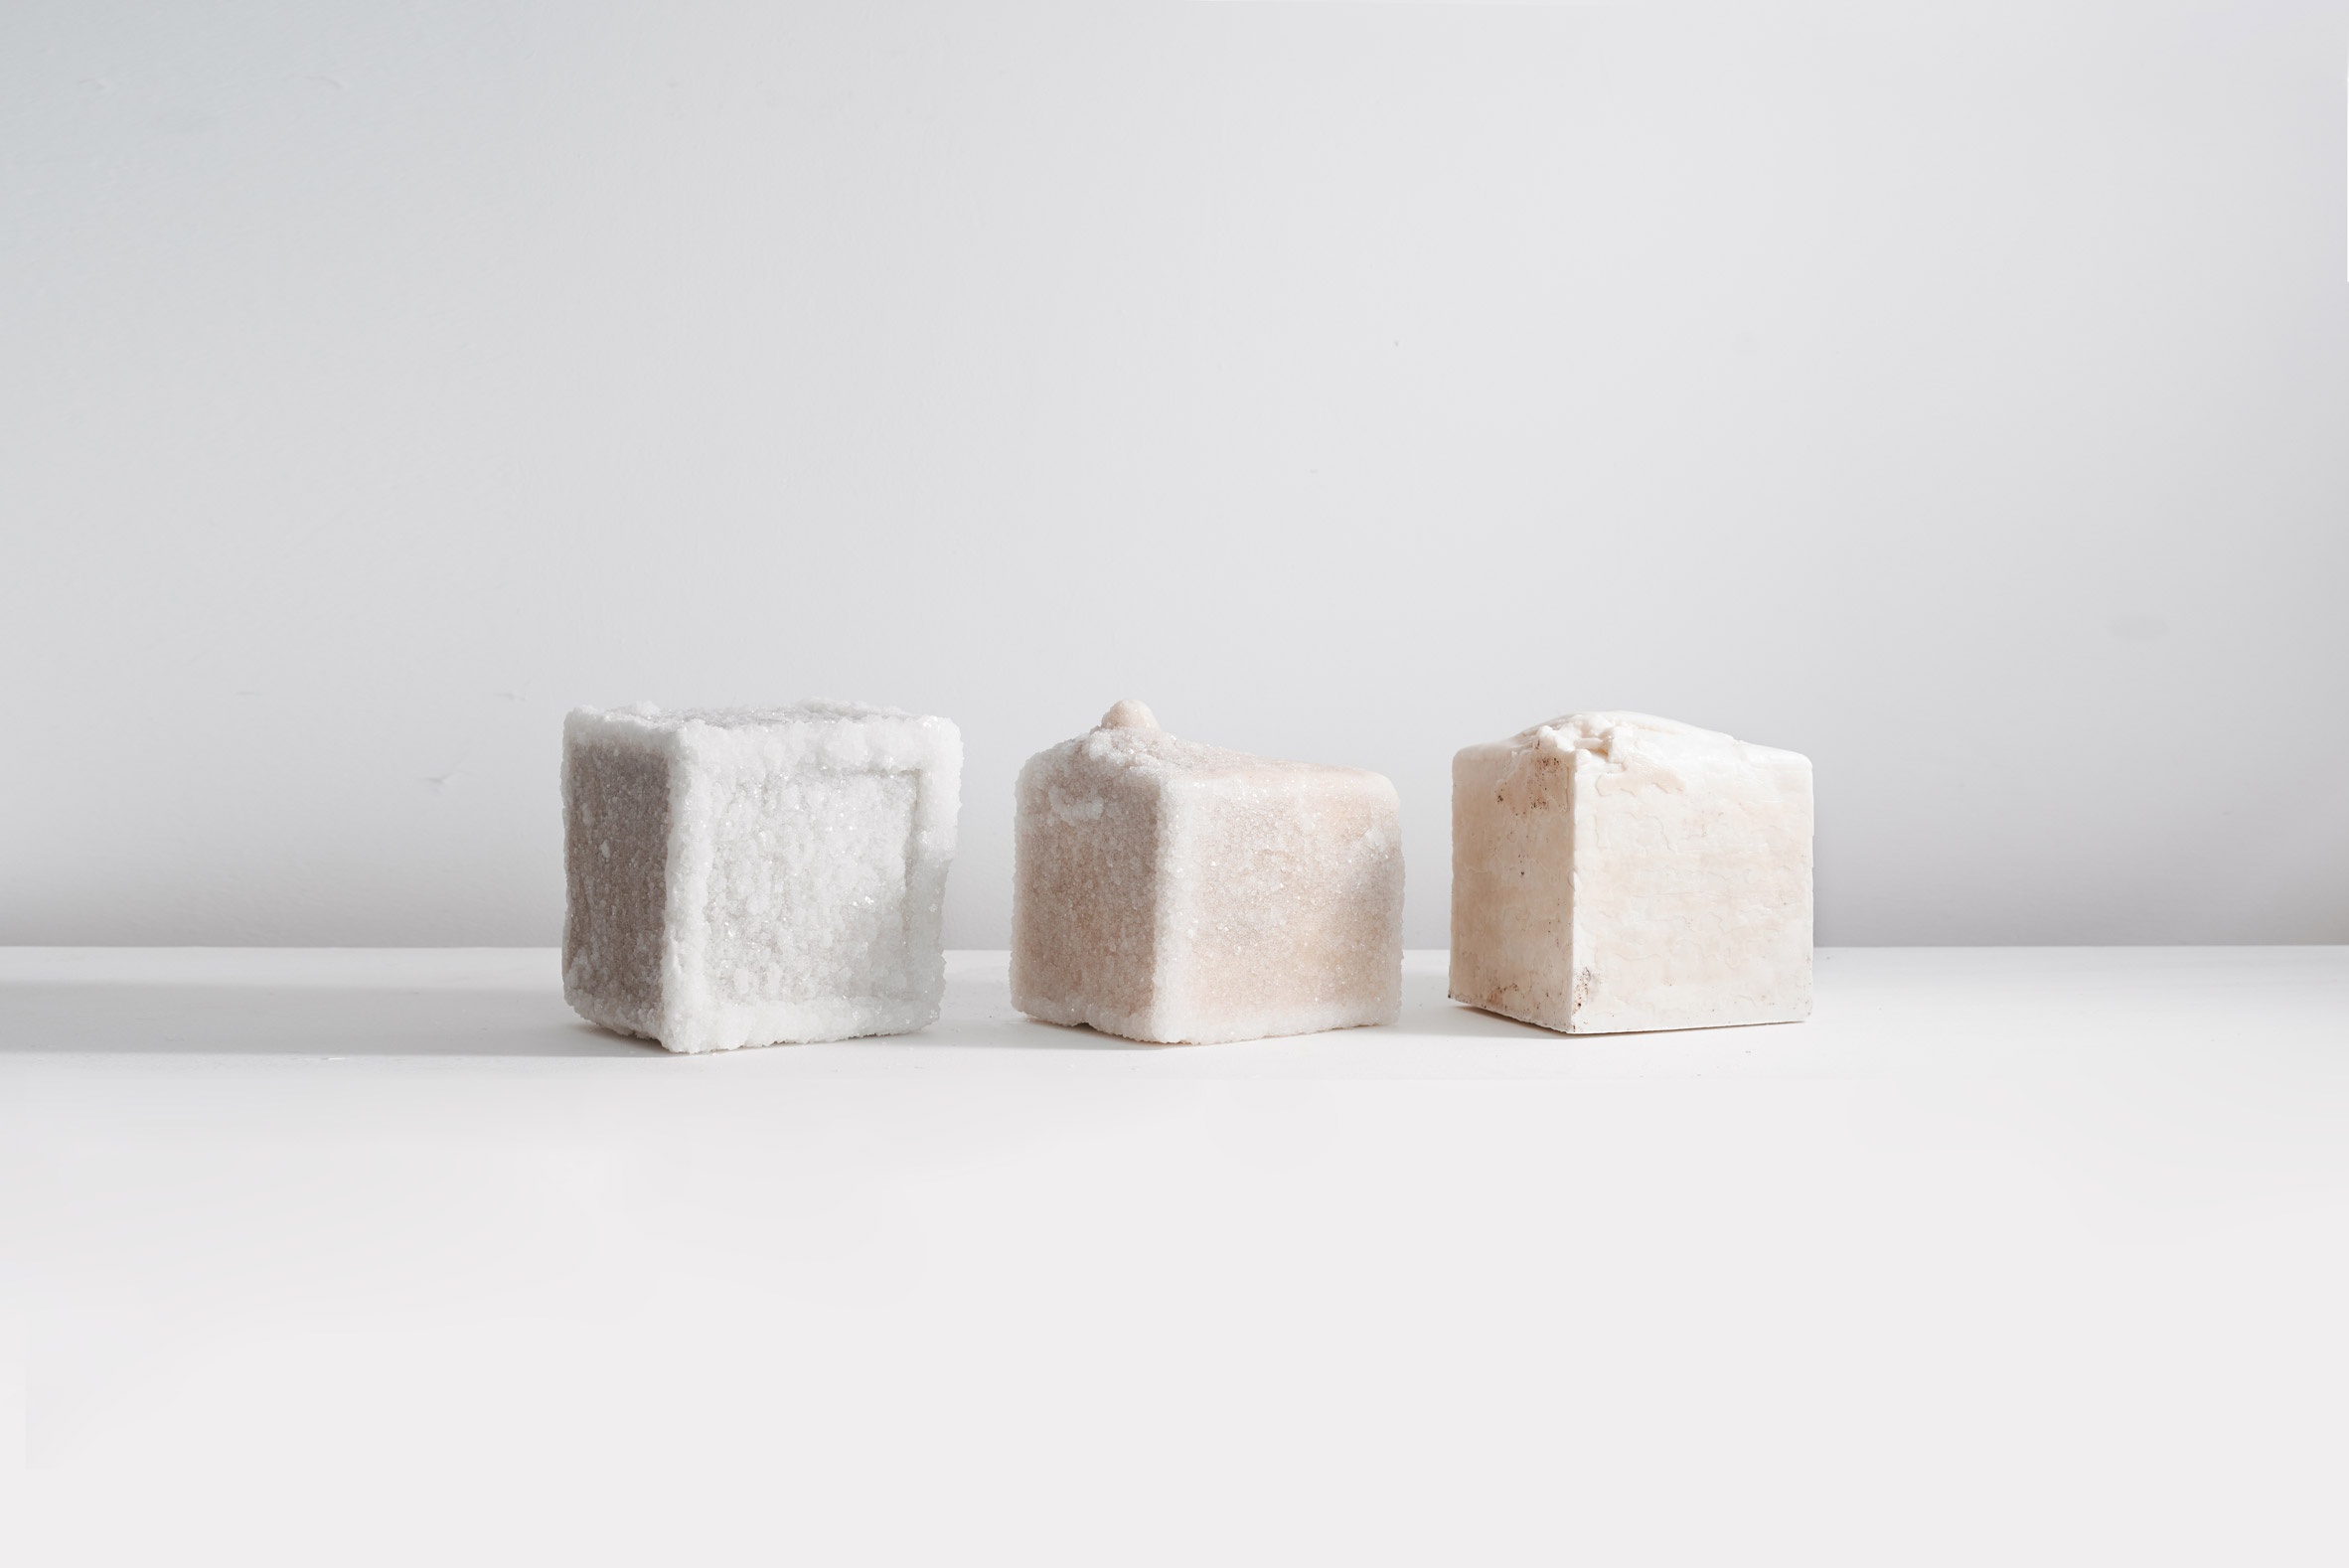 Building blocks made from Dead Sea salt